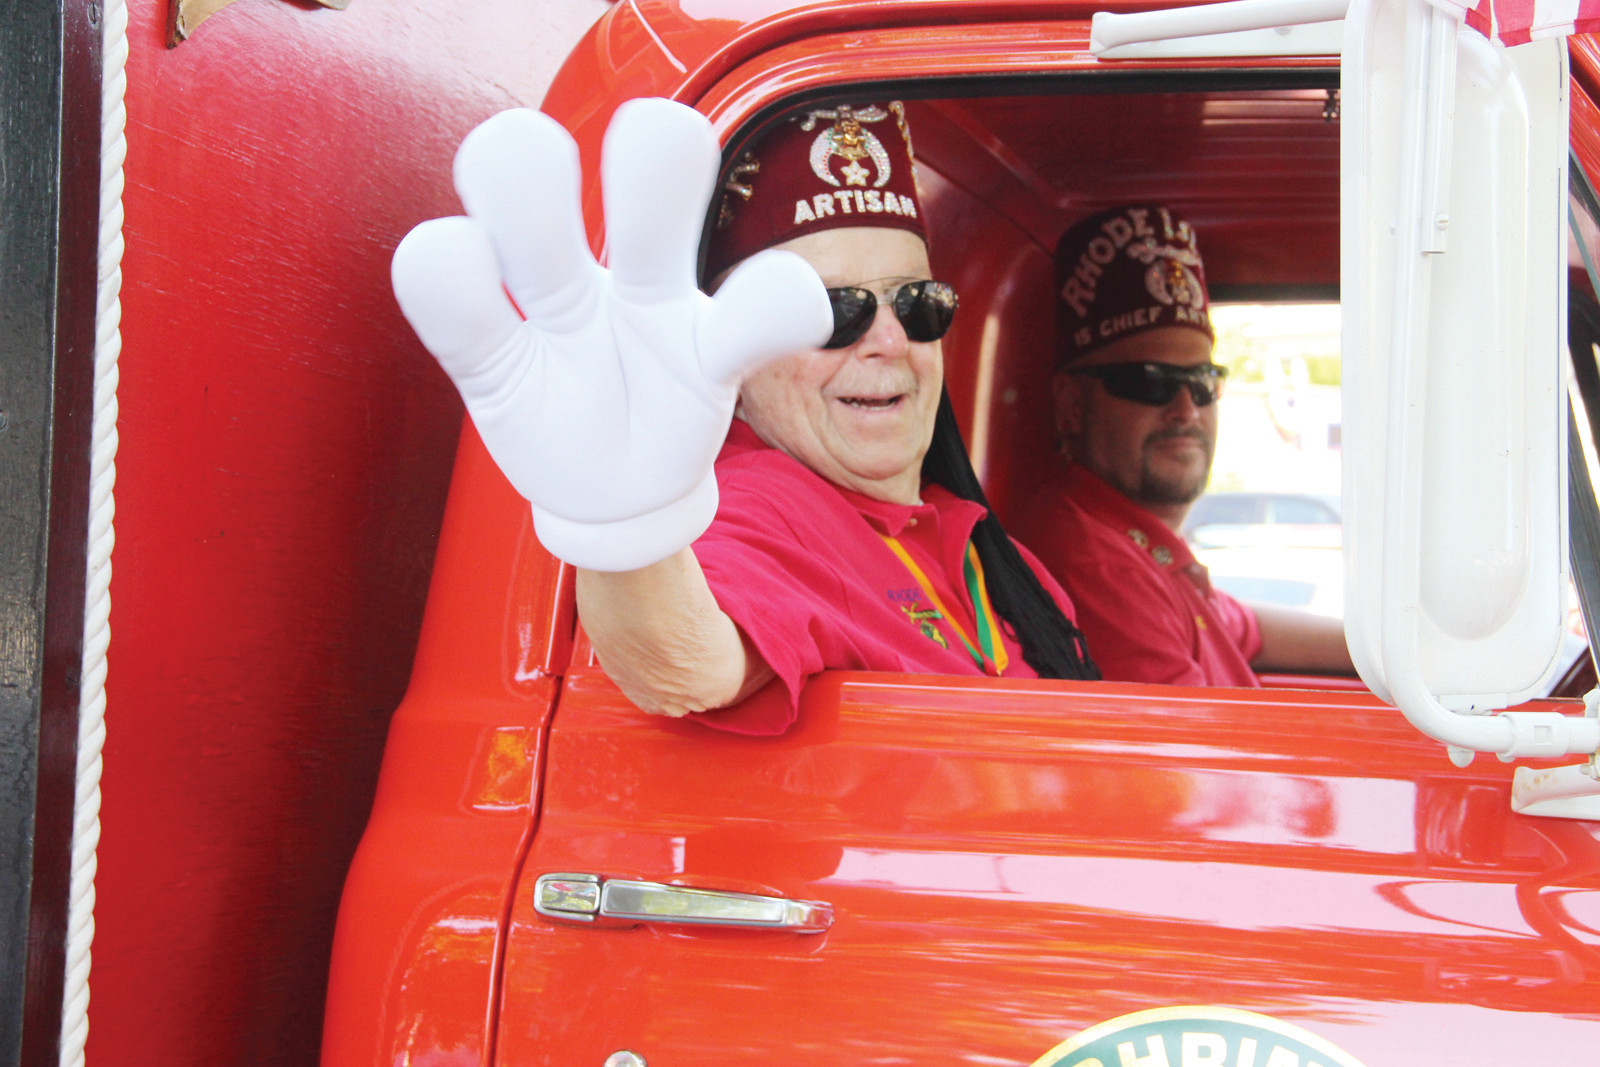 FINGER WAVE: A Shriner waves to the crowd.